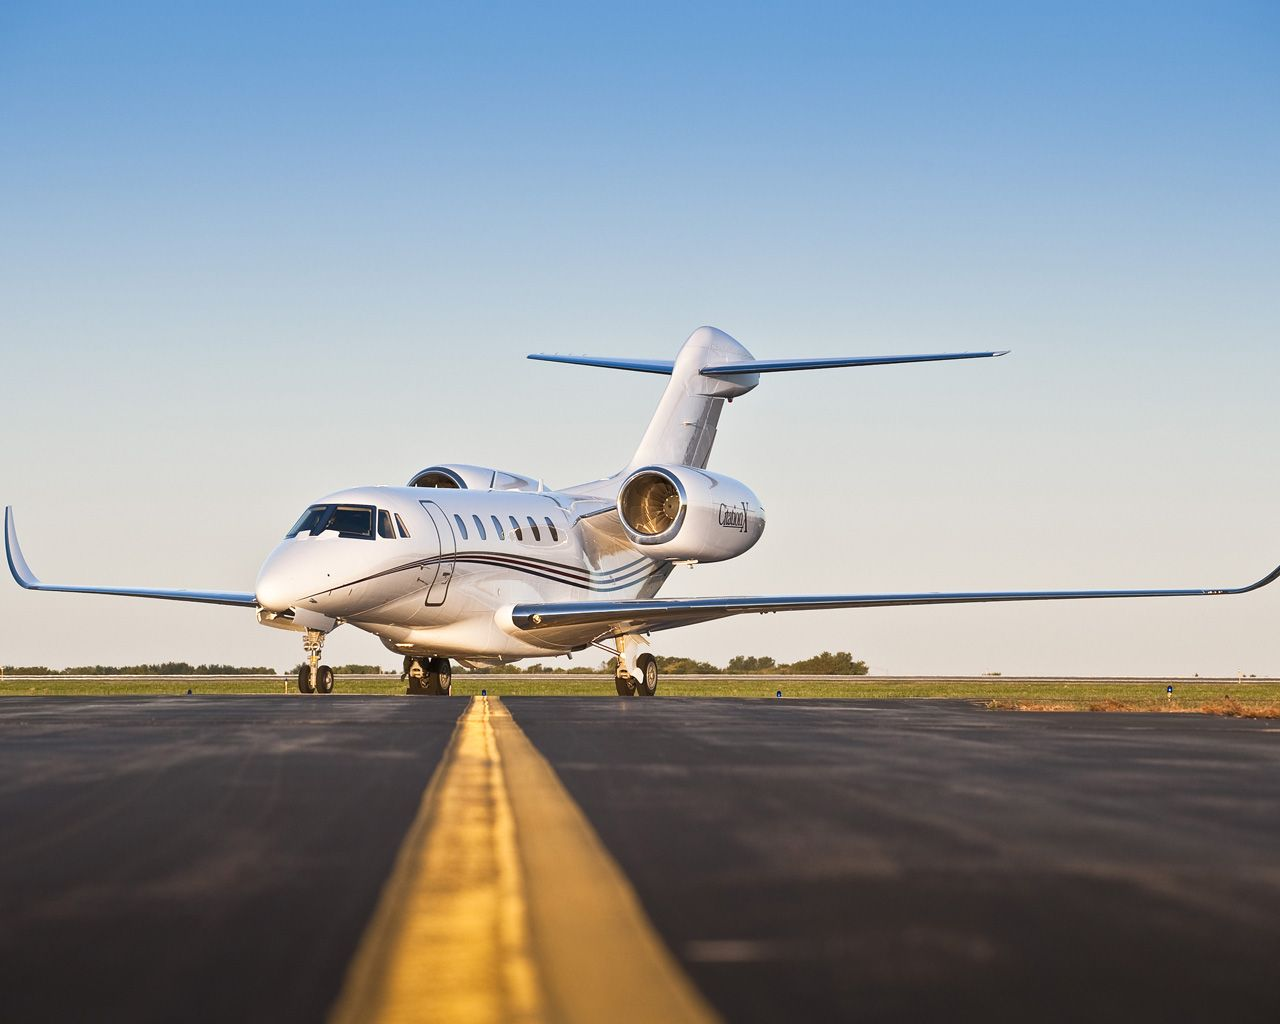 The Cessna Citation X.  Now there is a Citation TEN which is a new and improved X.  Mainland to Hawaii is possible in this aircraft, which is not the case for most private aircraft.  Of course, it is an insanely expensive way of getting there, but  when you're filthy rich, who cares?